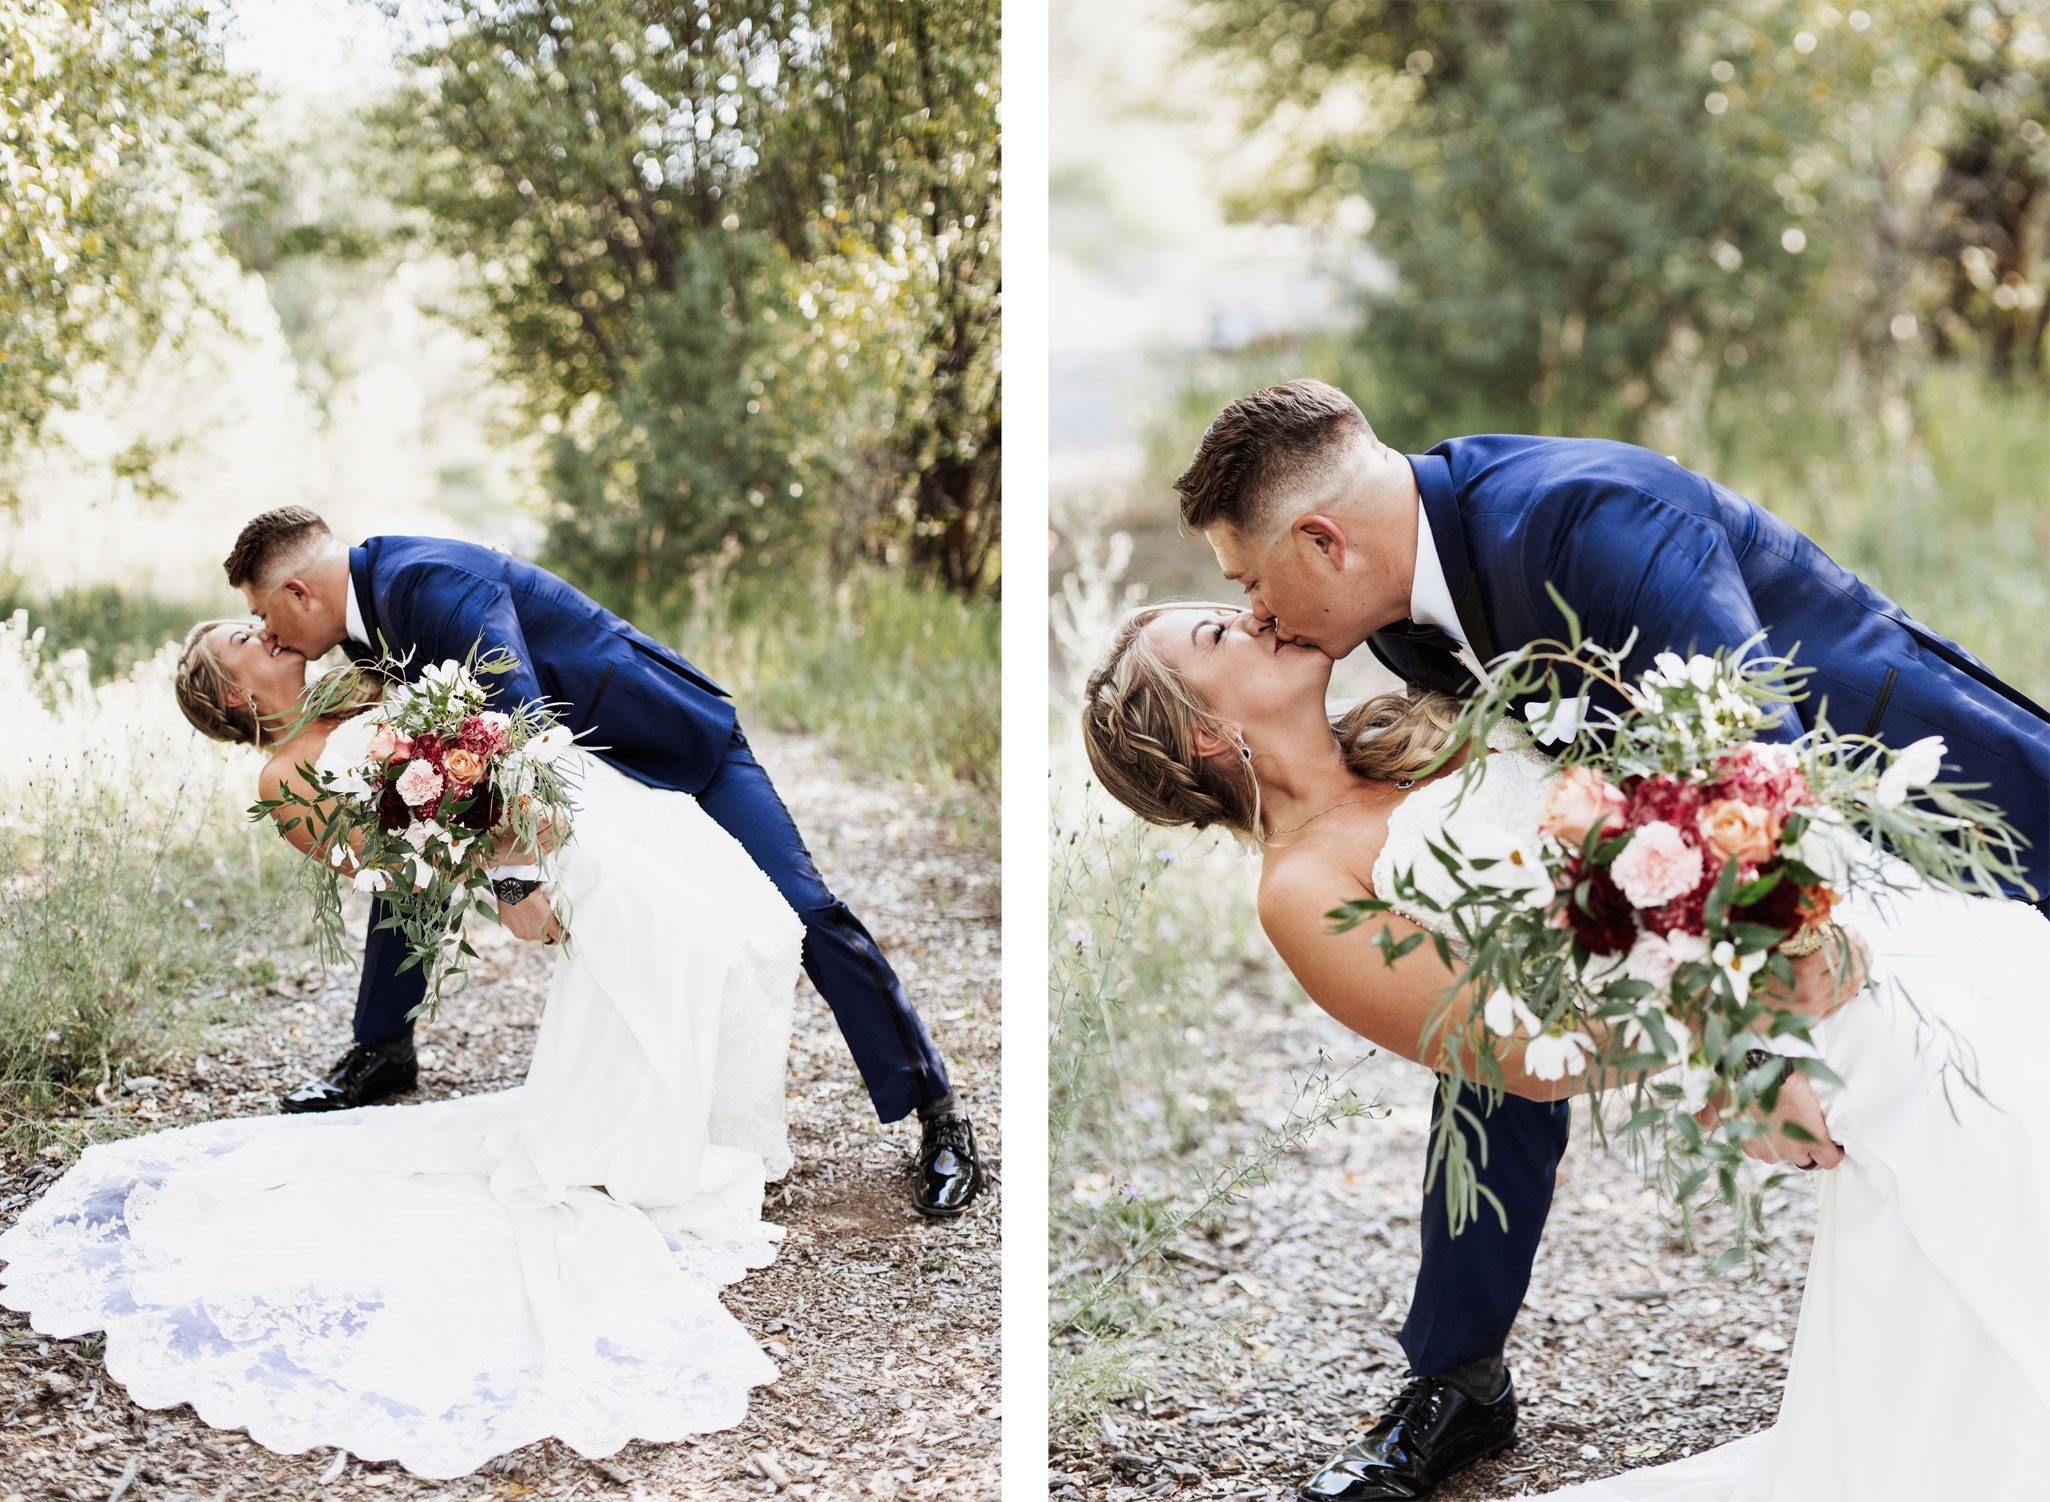 The Kiss! A Whimsical Dream Wedding at Ridgewood